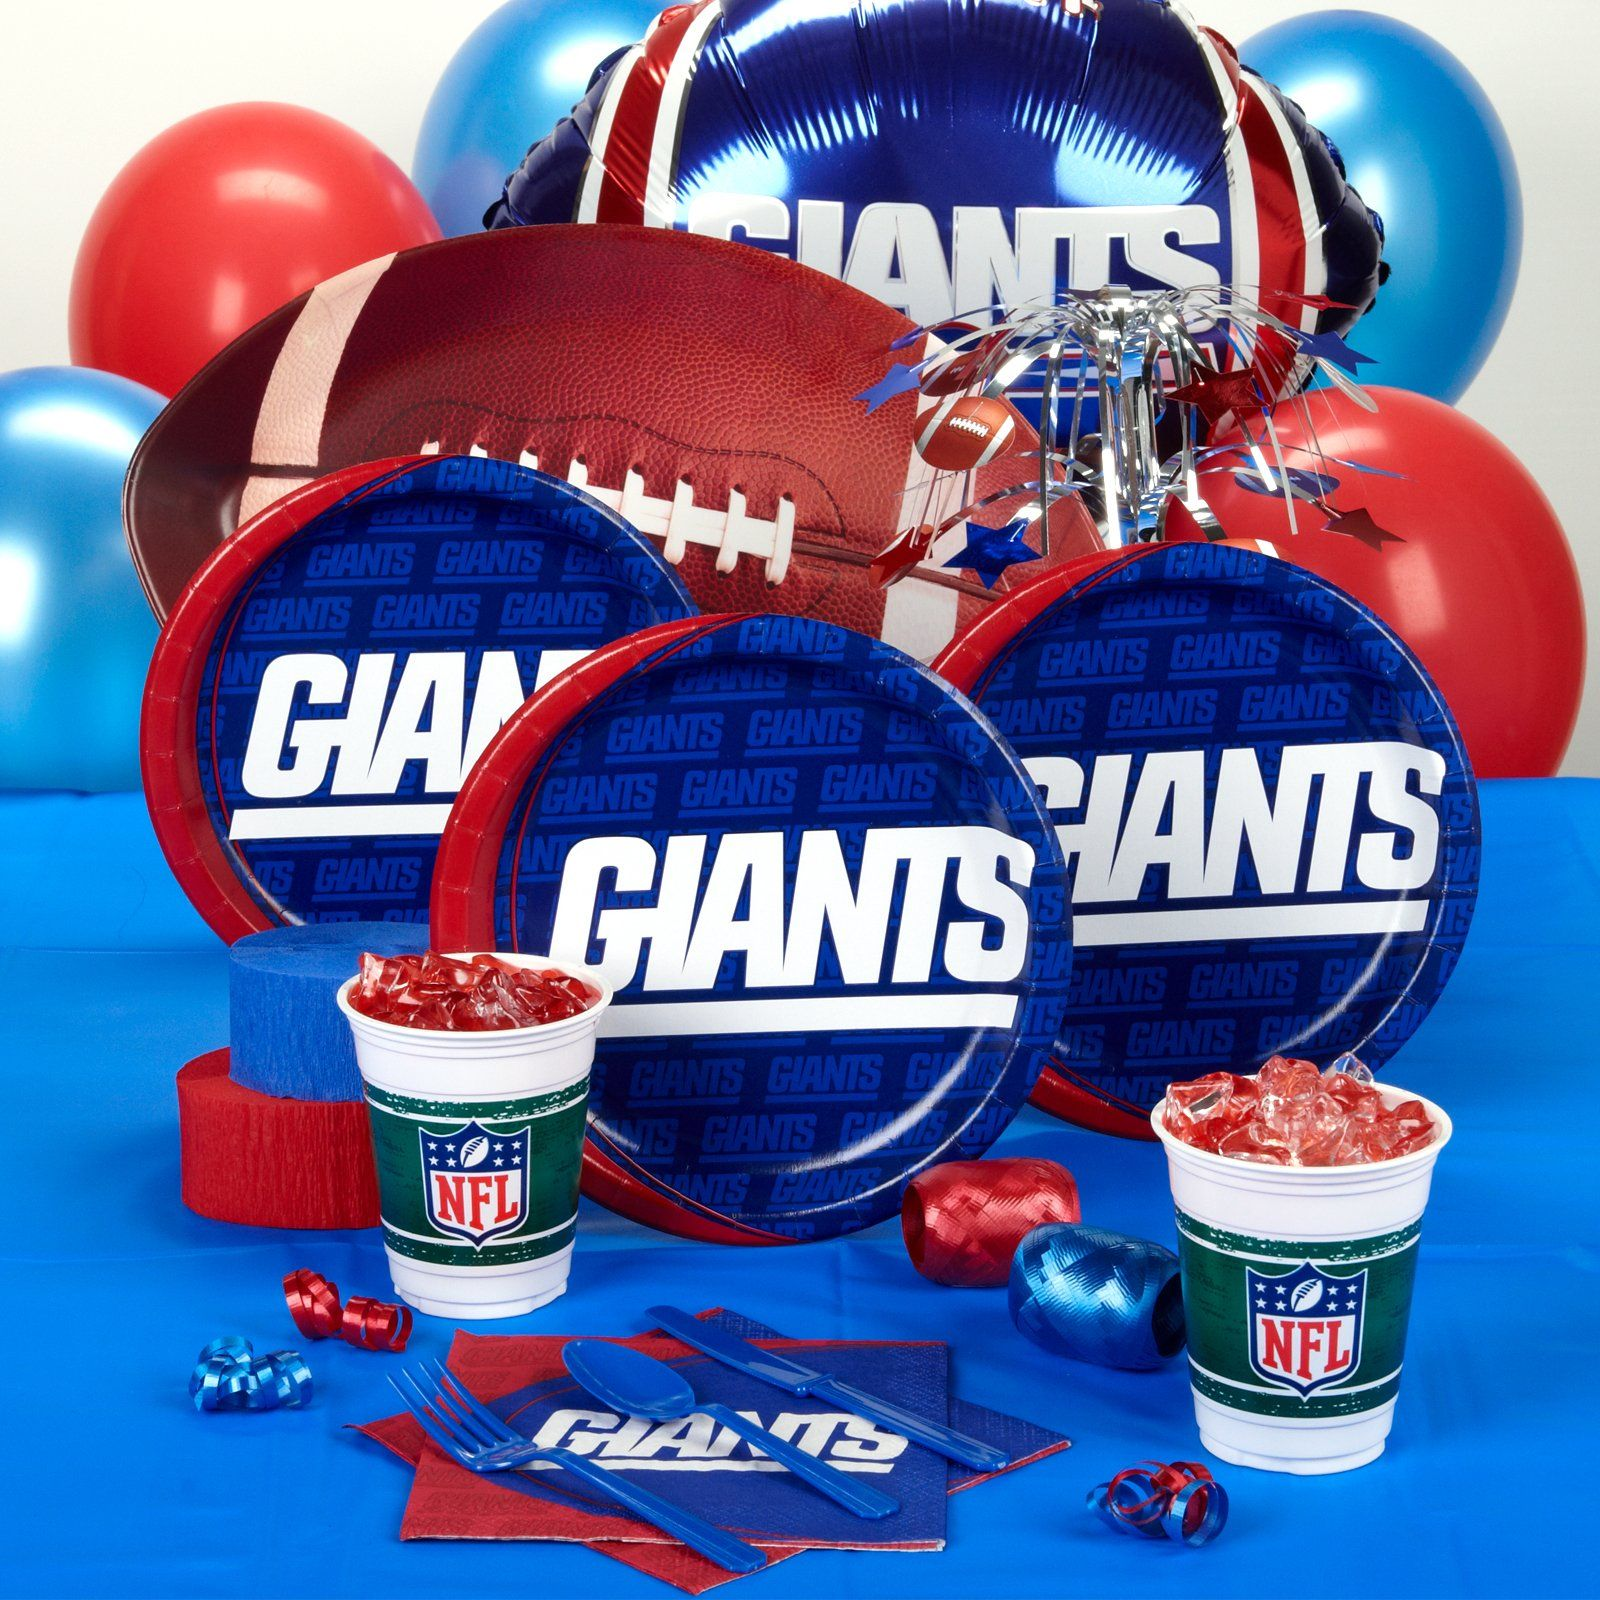 eed5a29ceaa New York Giants Party Supplies | Boys B-days | New York Giants, New ...